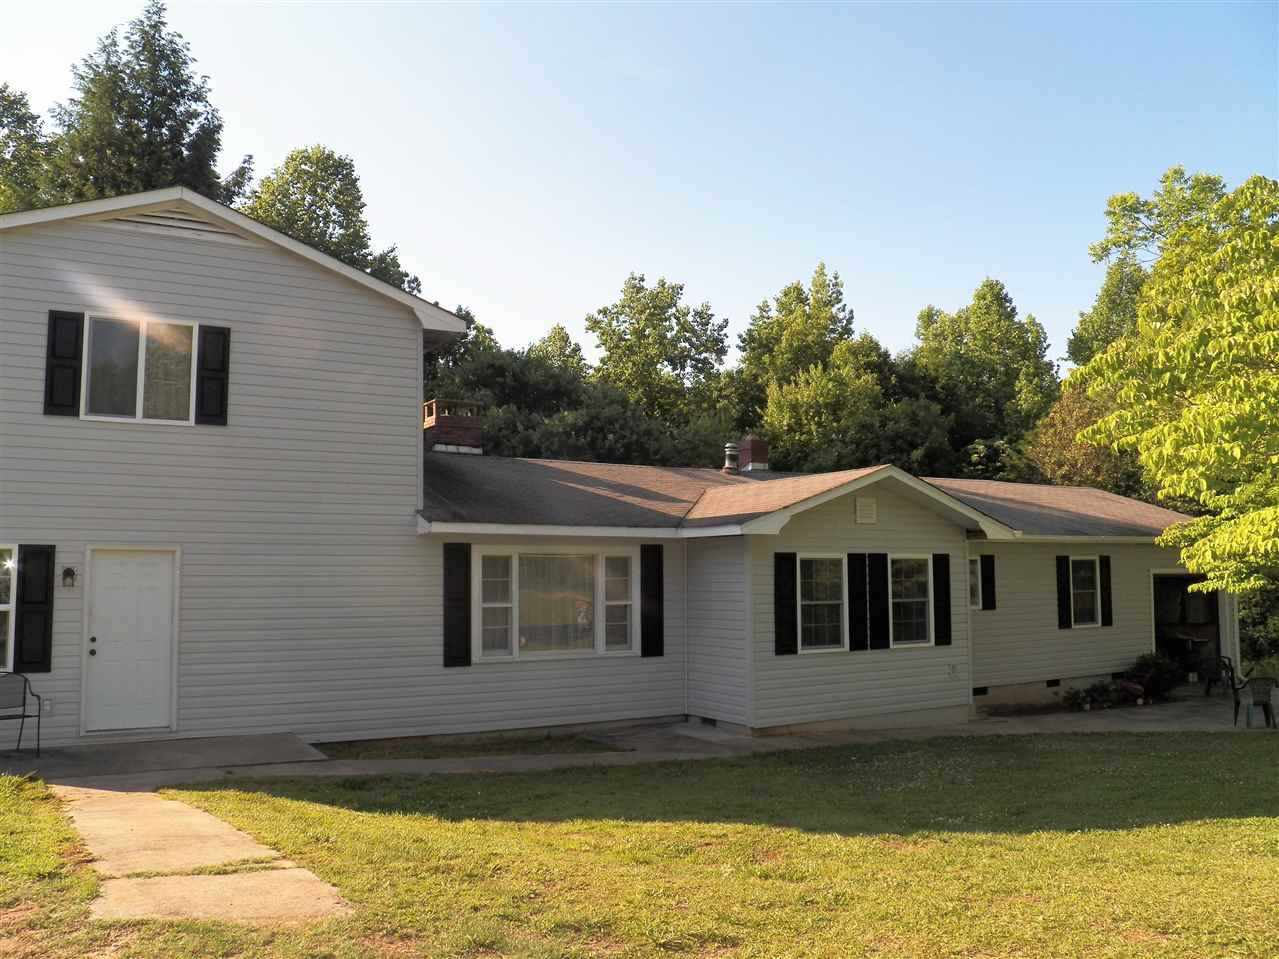 191 S Retreat Rd, Westminster, SC 29693